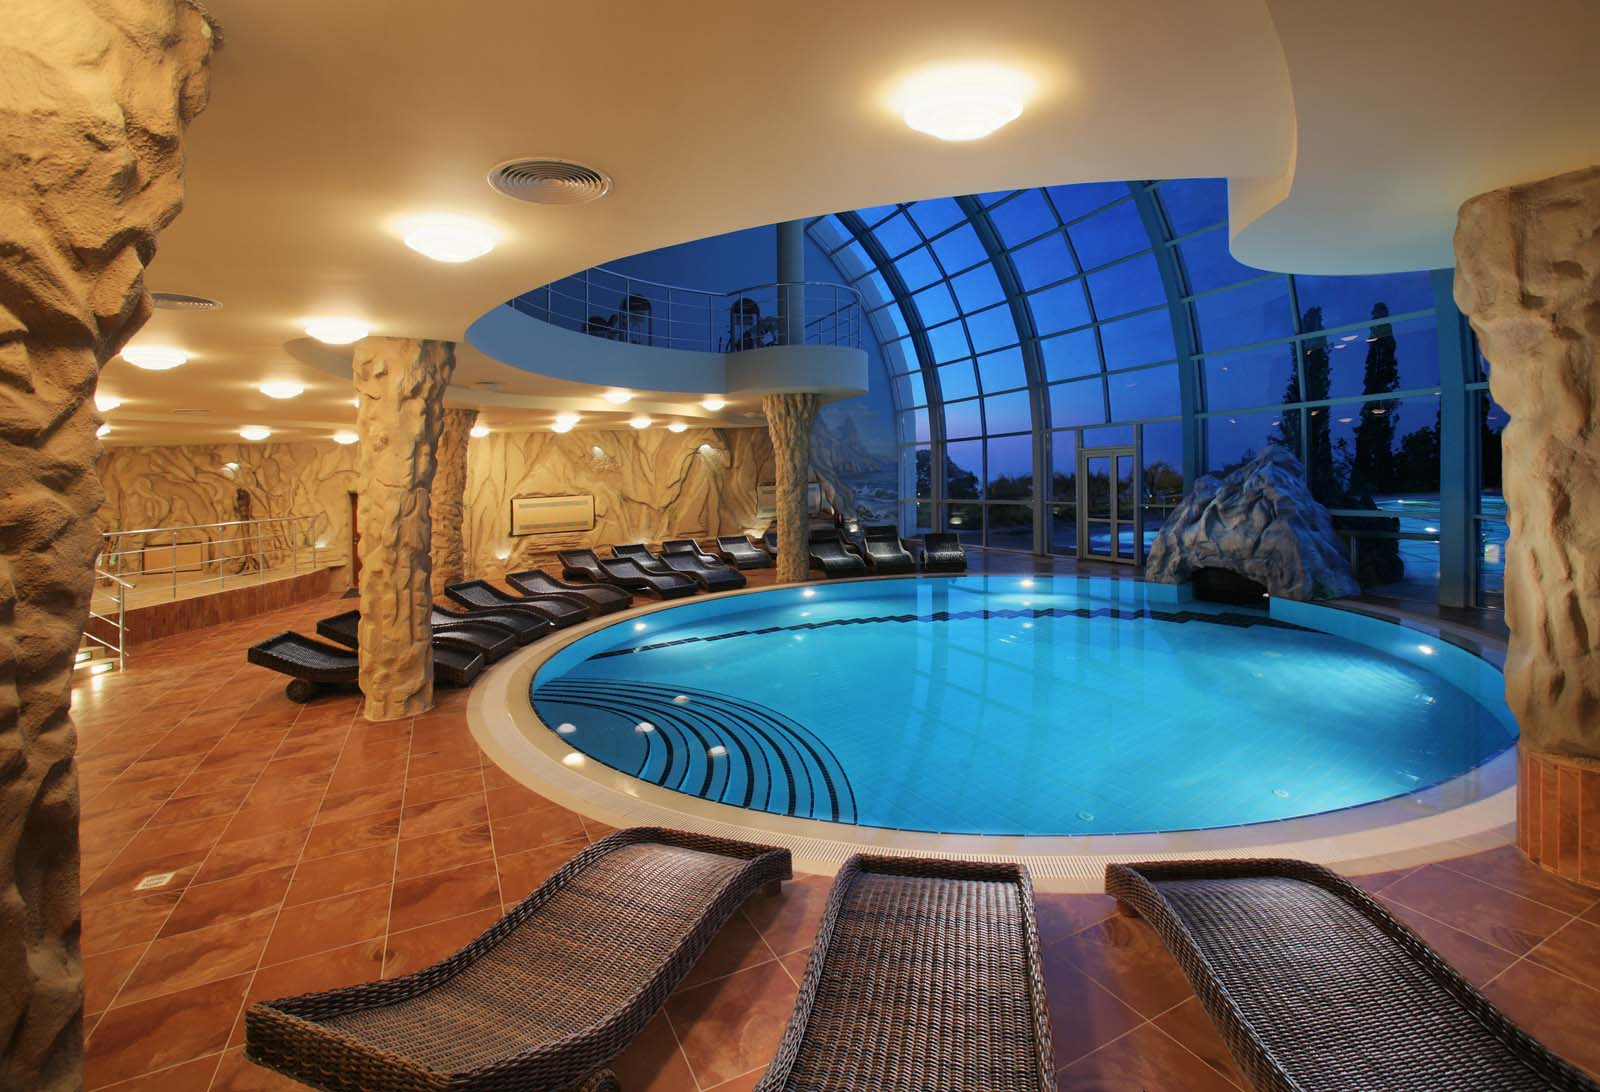 Awesome indoor swimming pool ideas 29